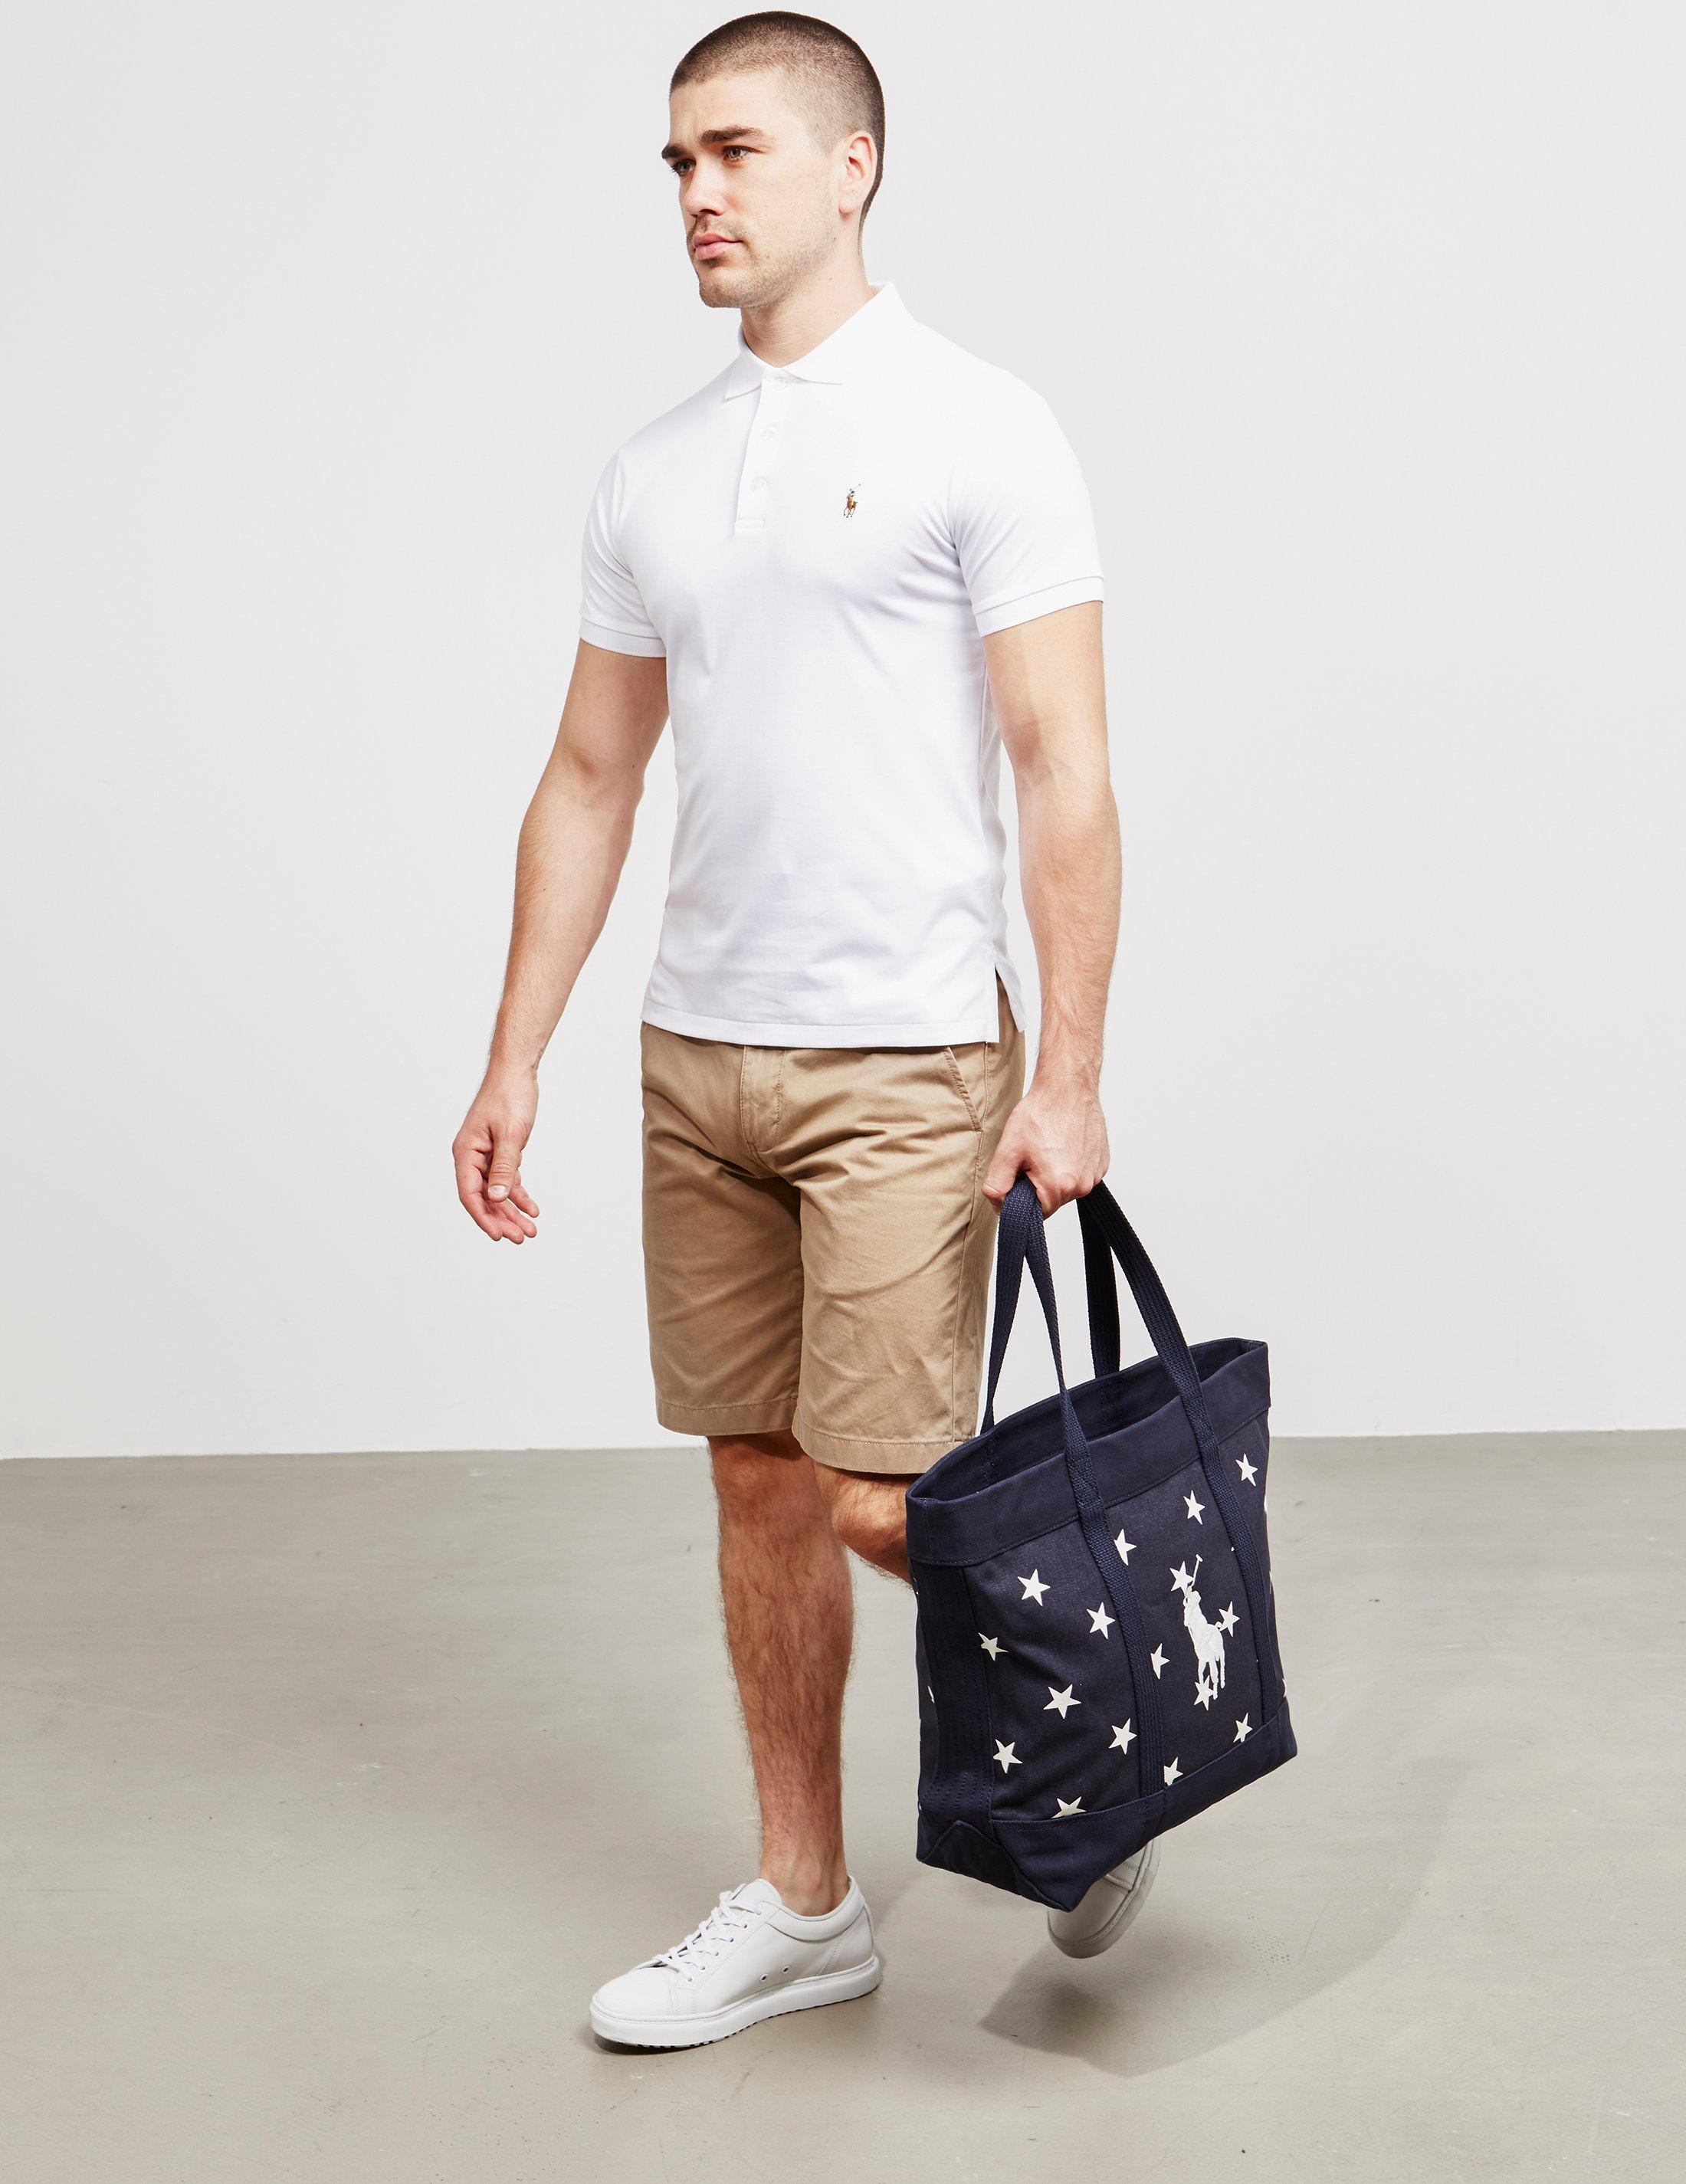 Polo Ralph Lauren Mens Stars Tote Bag - Online Exclusive Navy Blue in Blue  for Men - Lyst 32c98b4ed4e3b